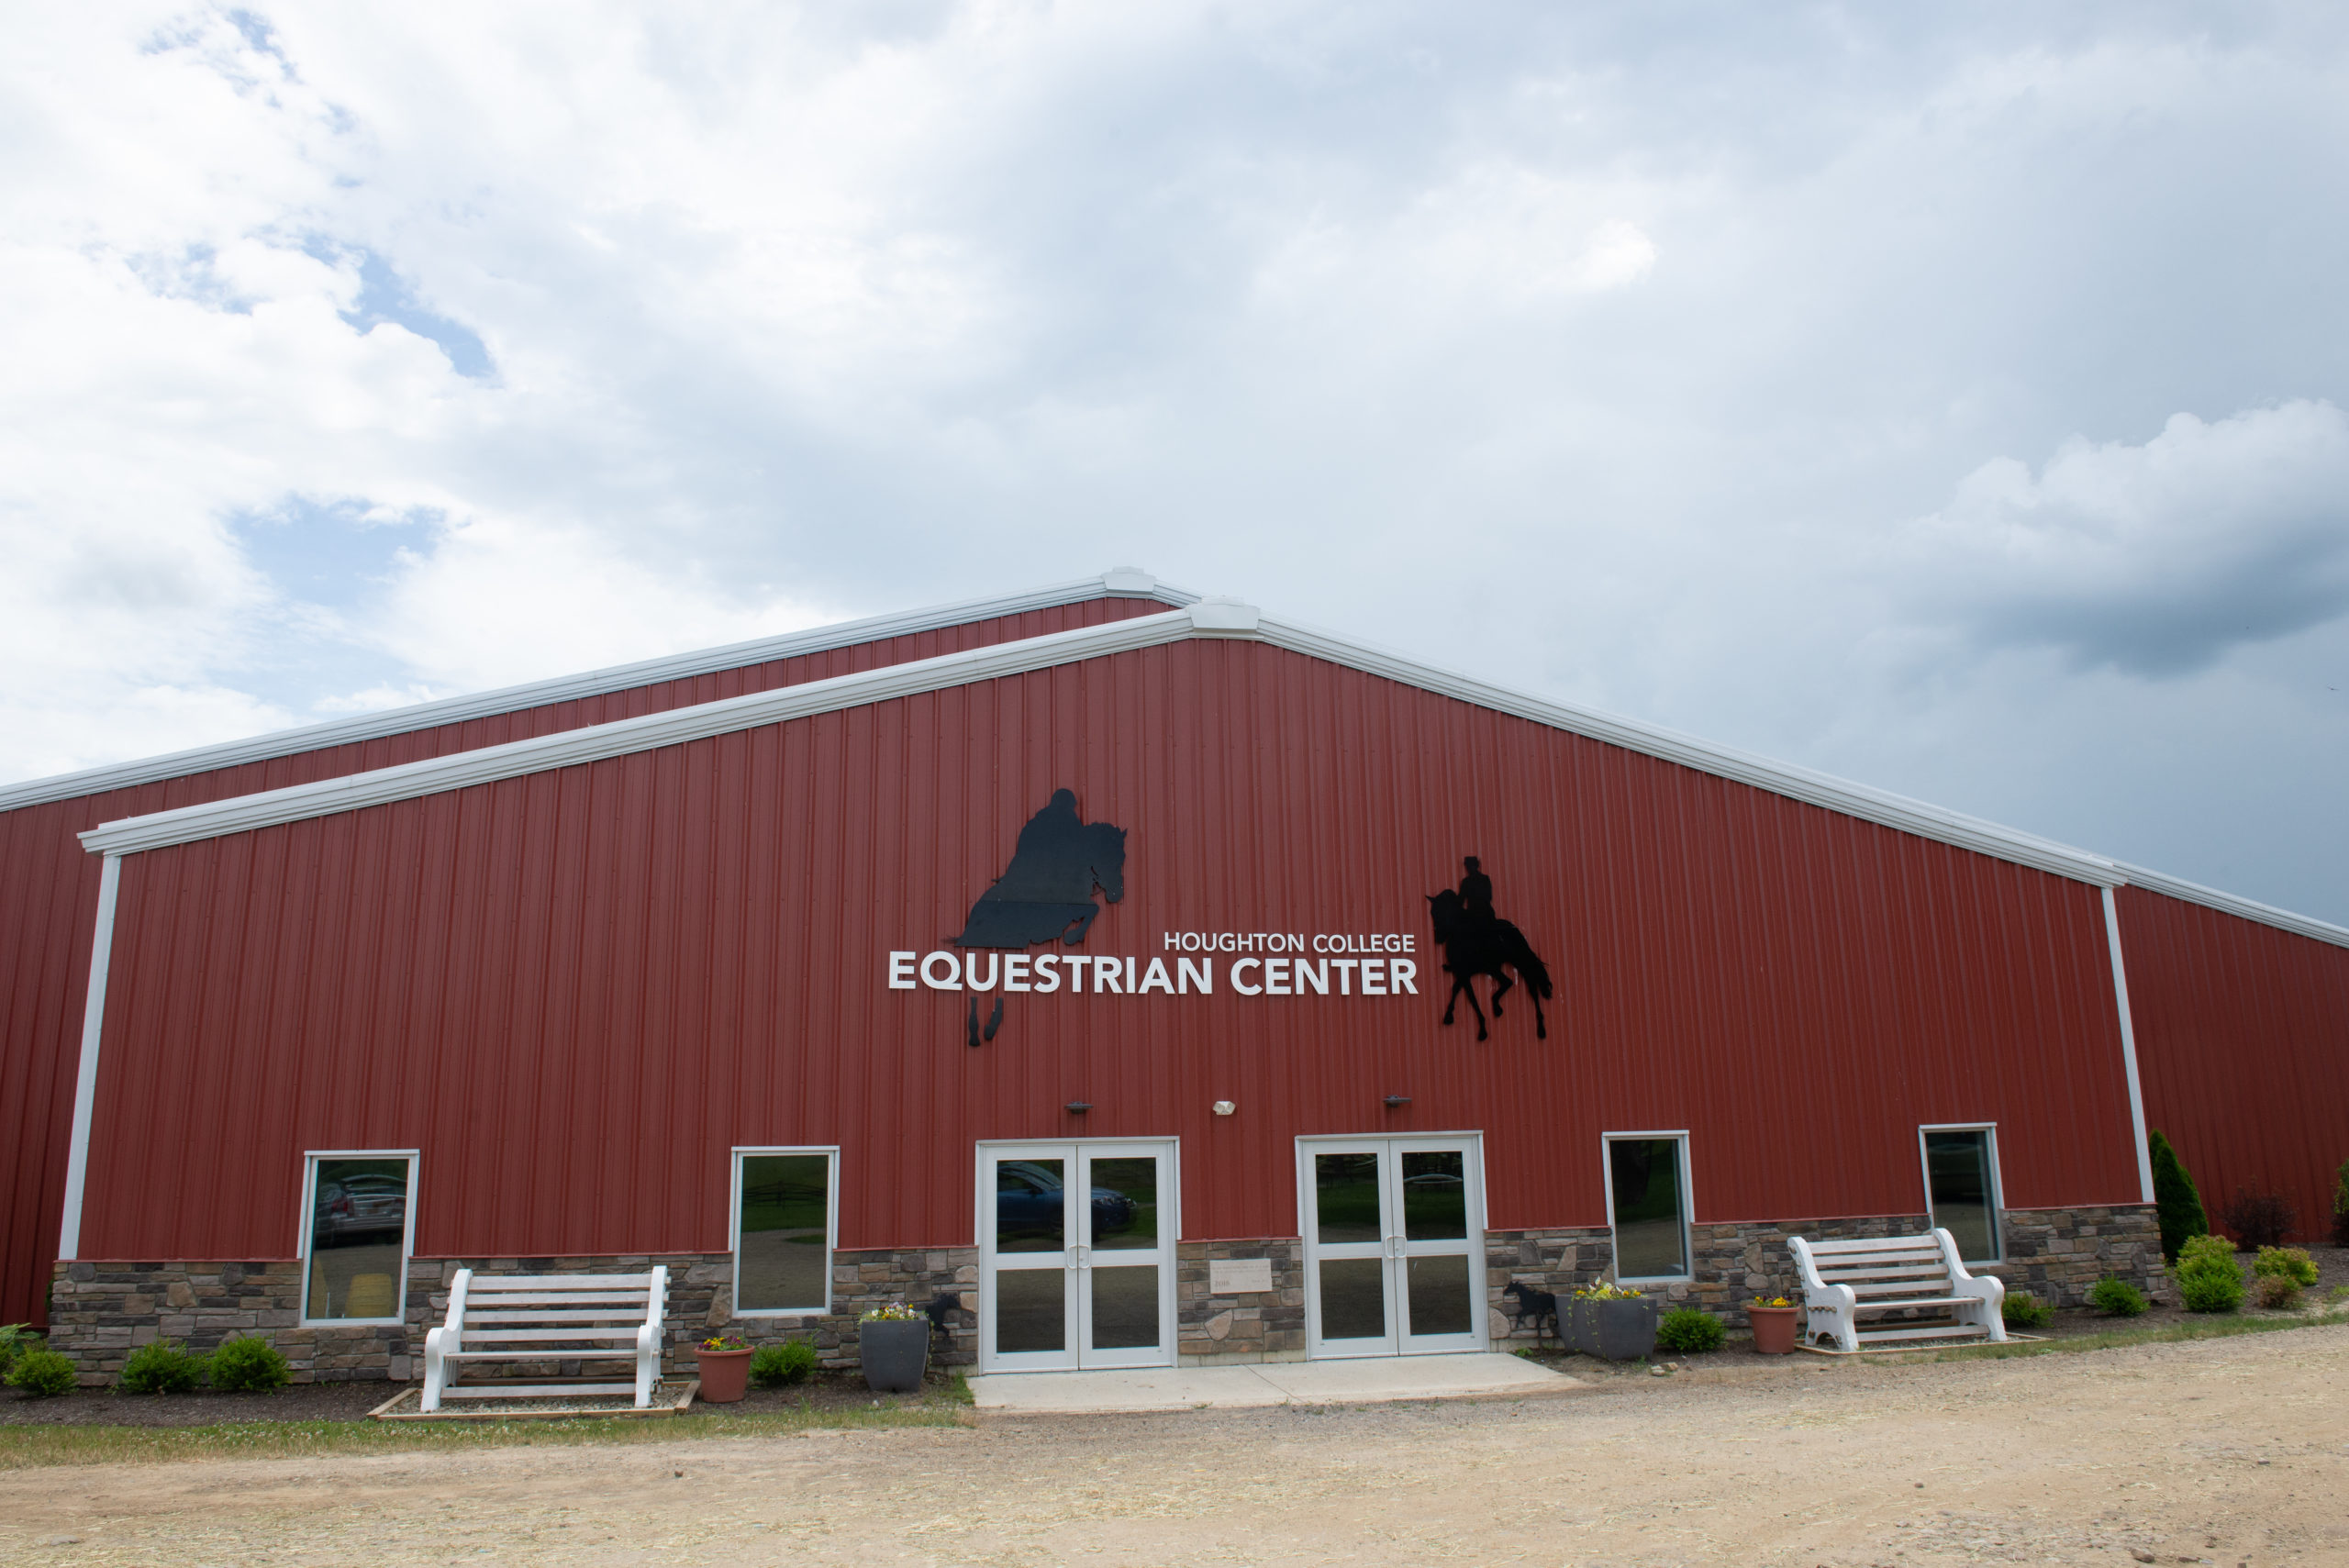 Houghton Equestrian Center